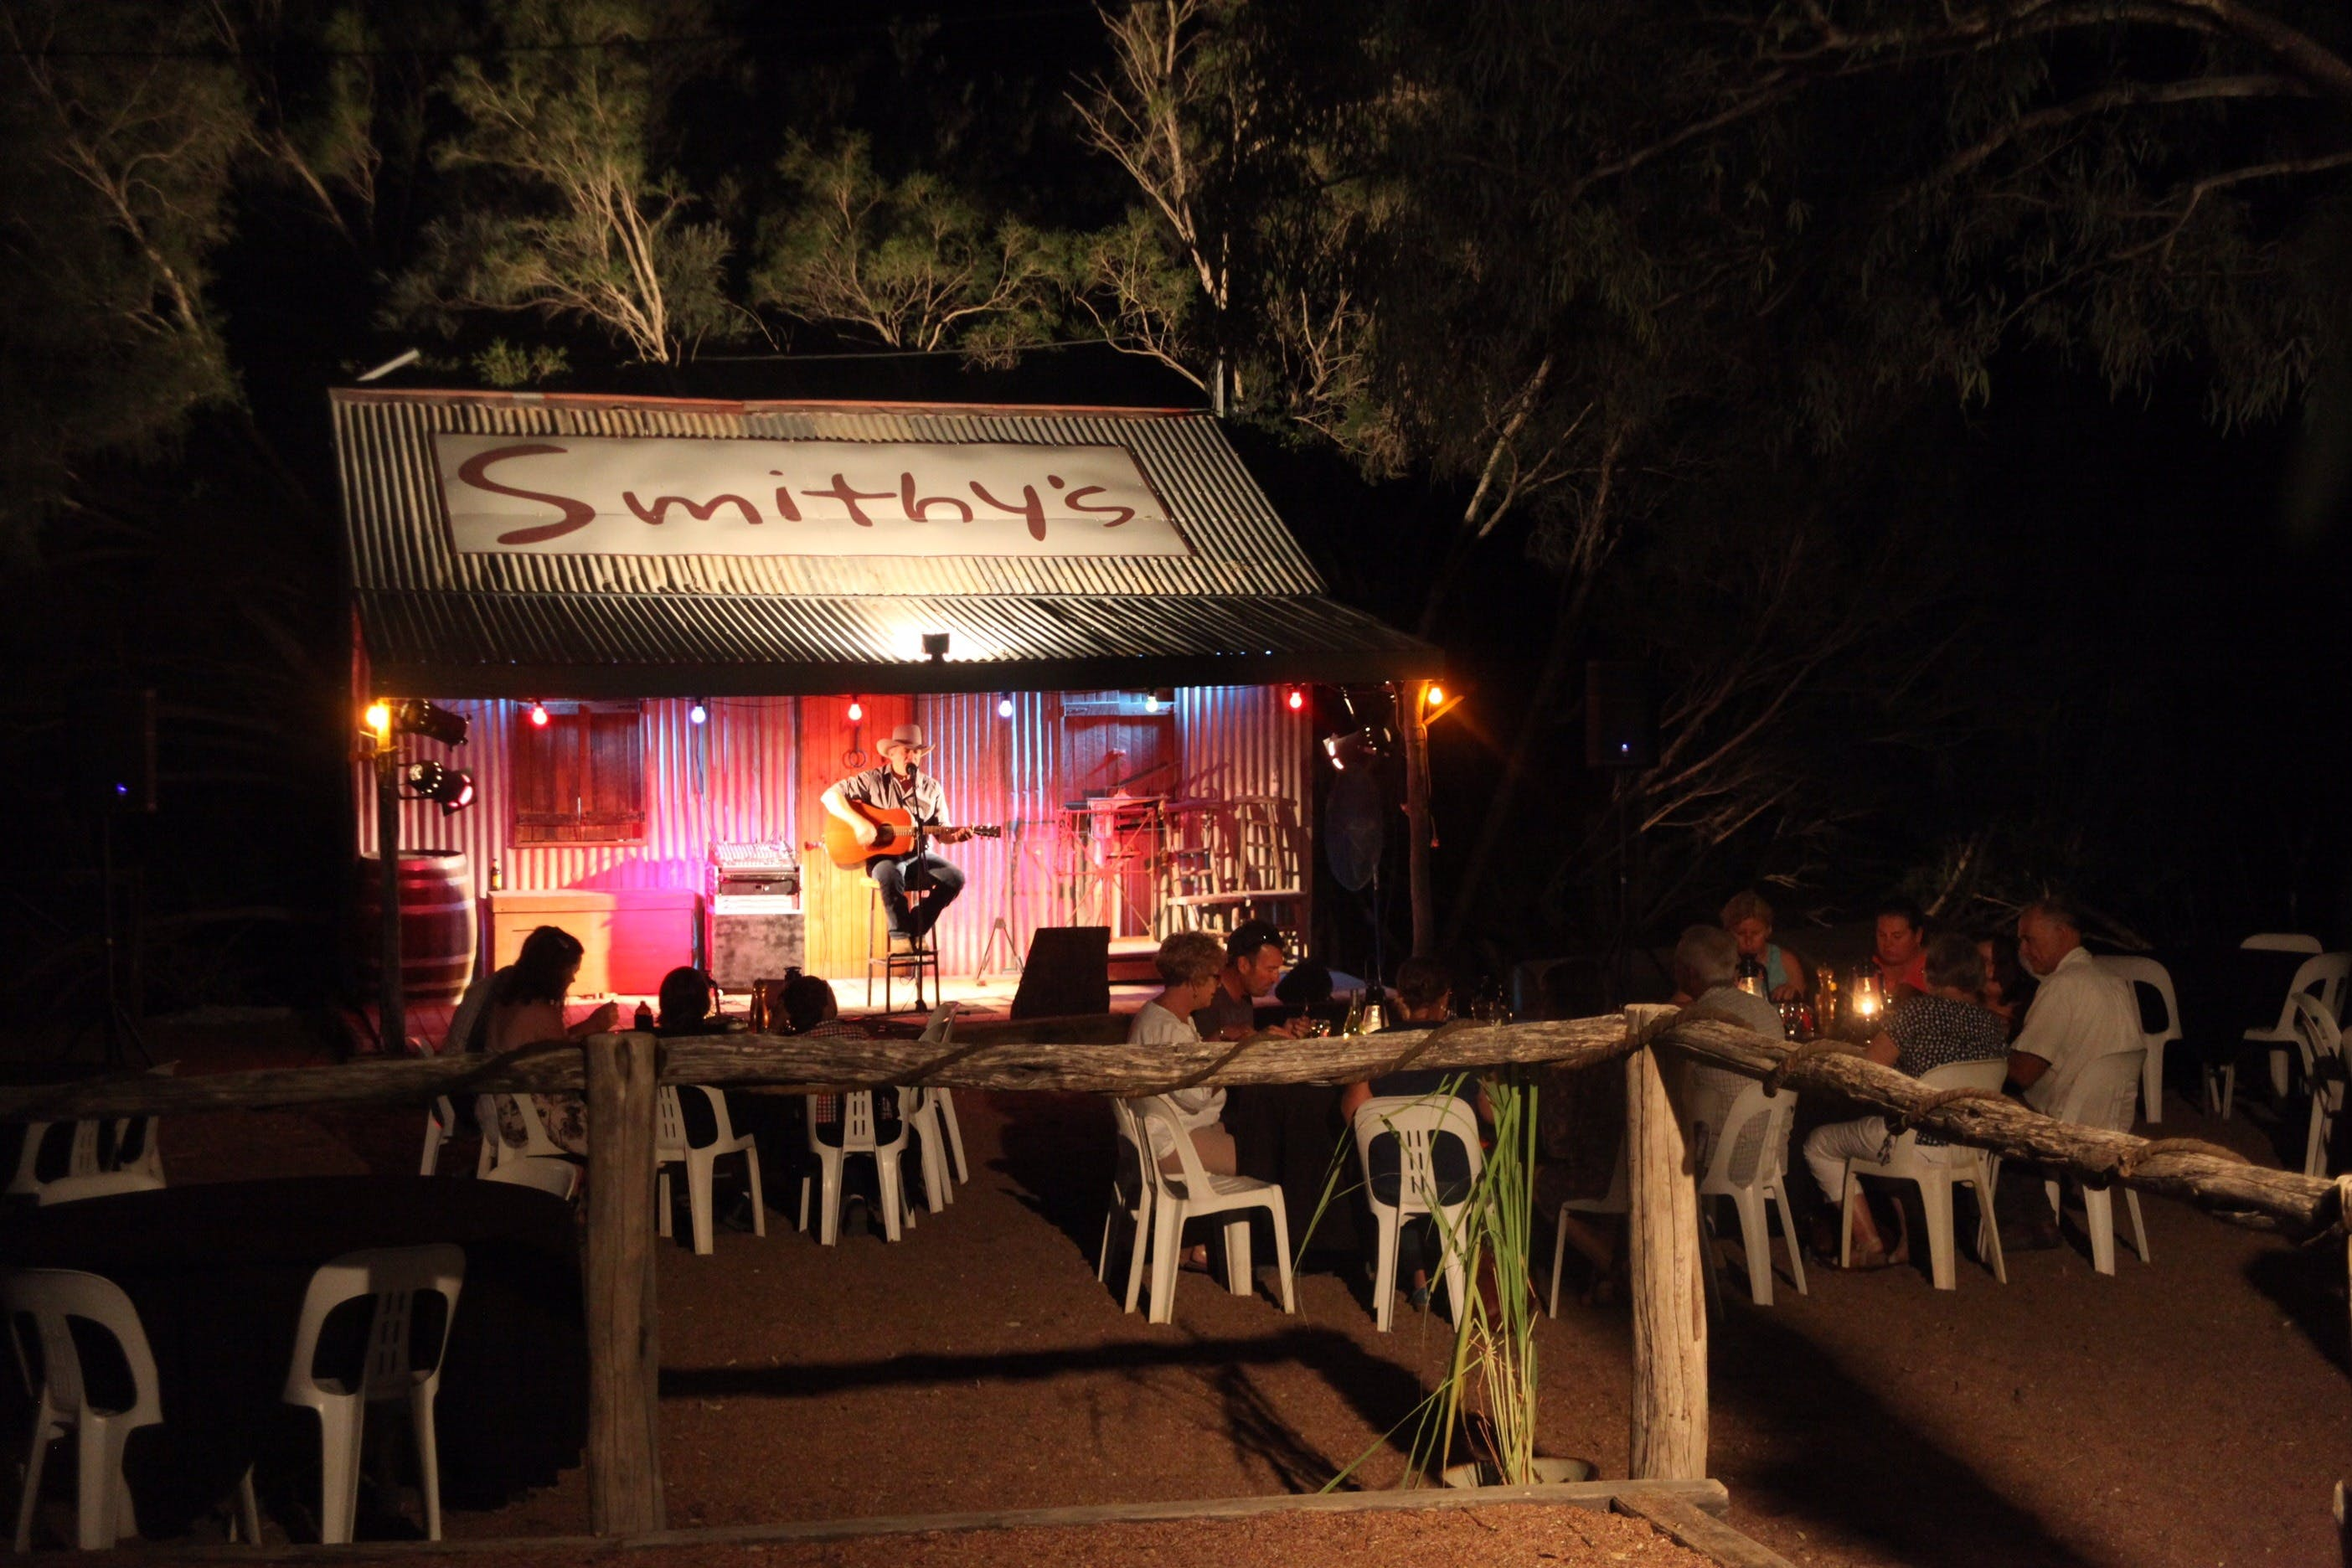 Smithy's Outback Dinner and Show - WA Accommodation